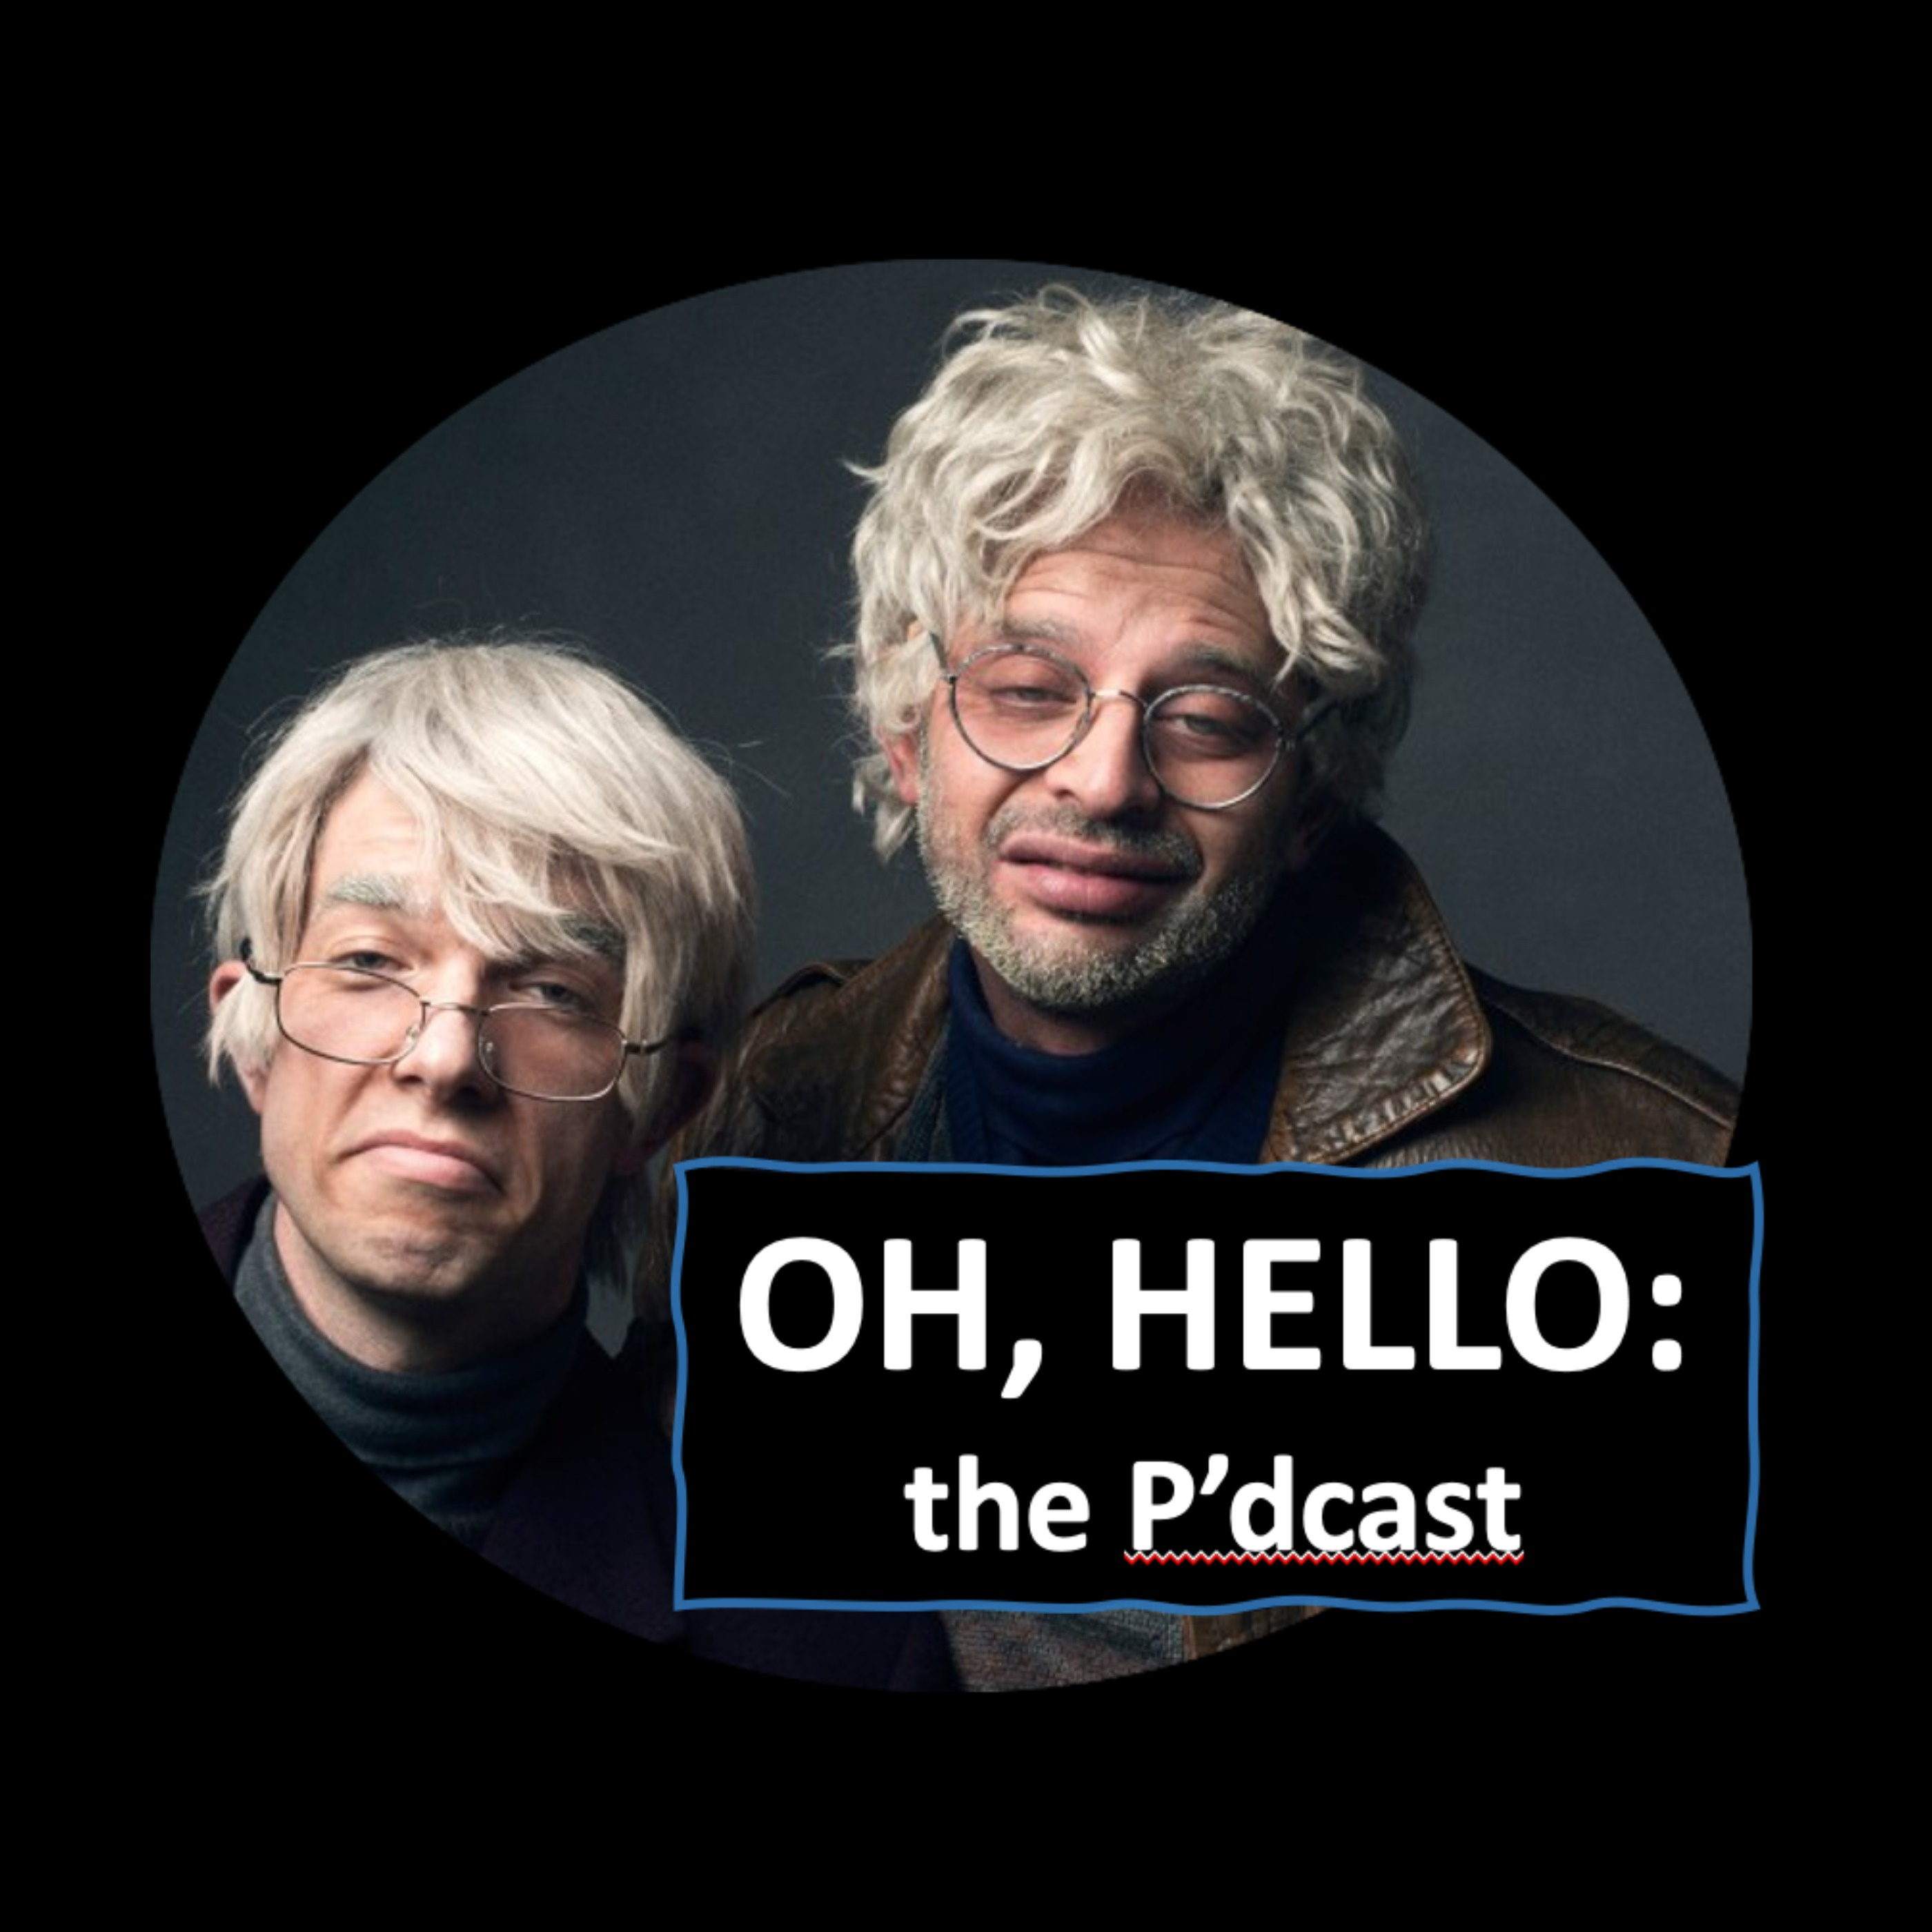 Oh, Hello: the P'dcast